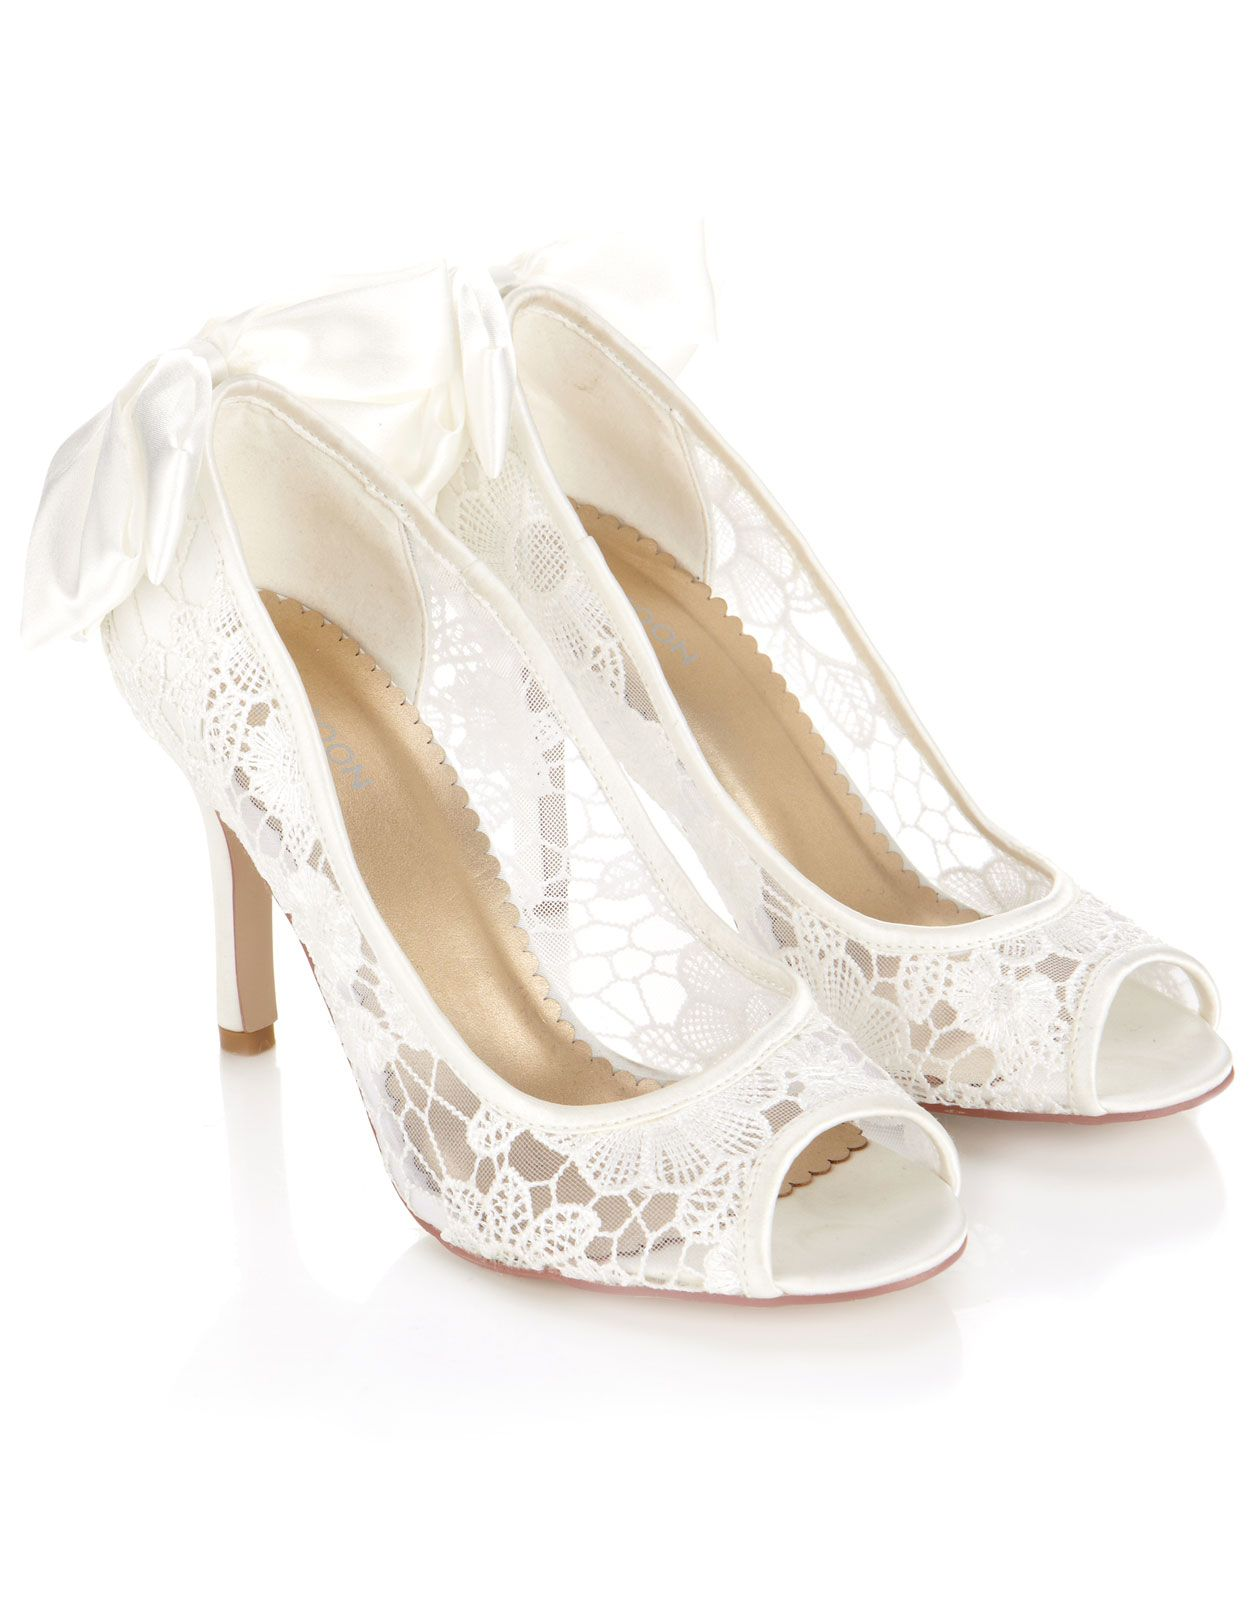 Lilliana Vintage Bow Peeptoe In Ivory From Monsoon I Have Just